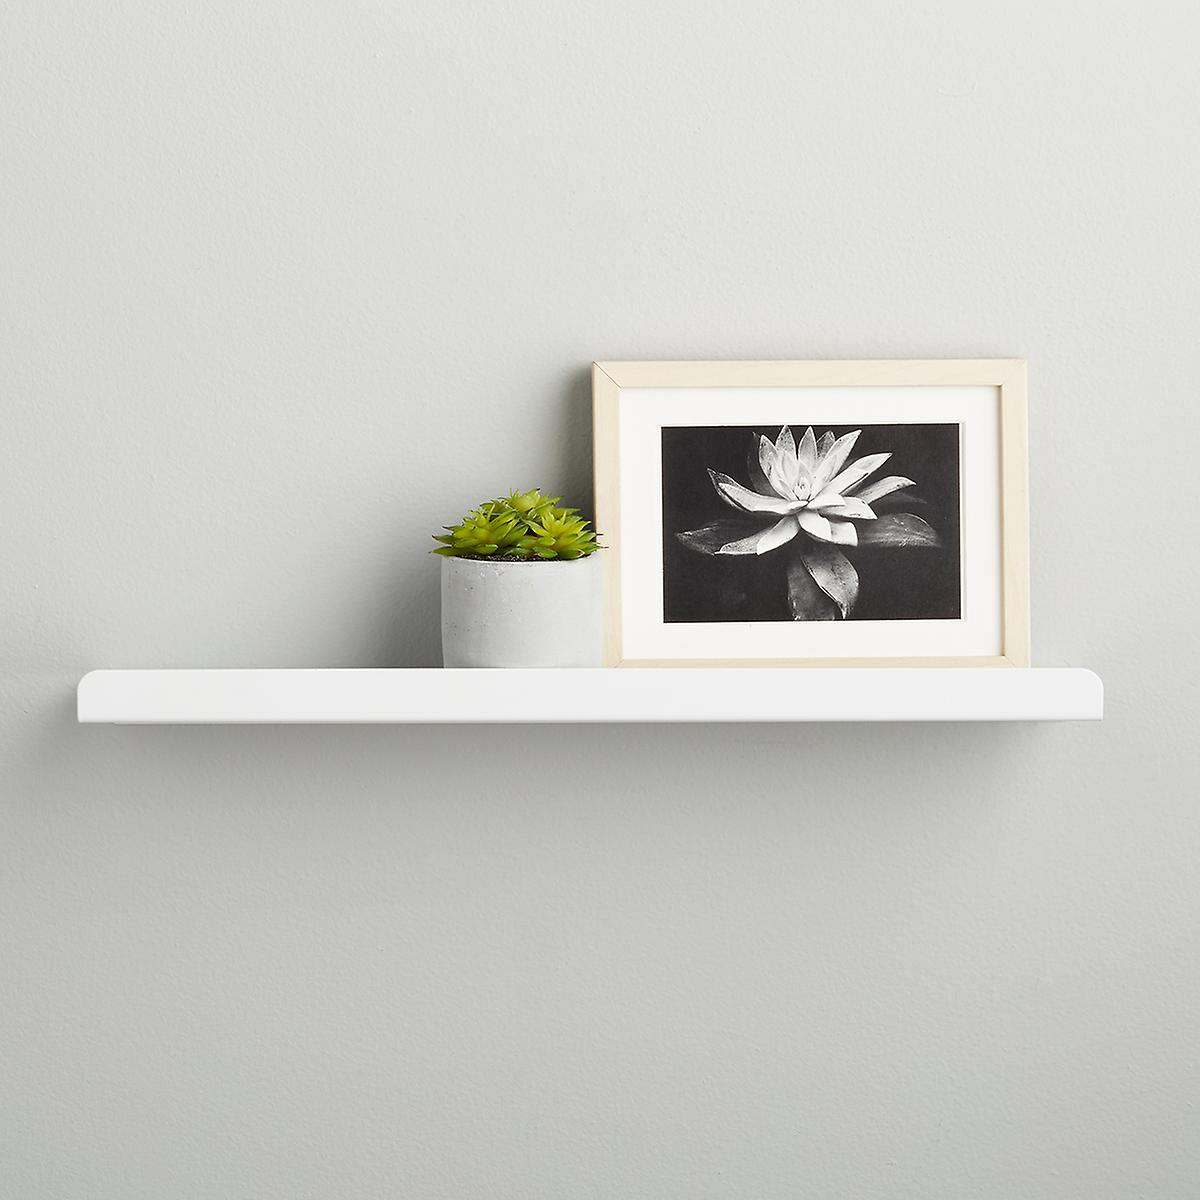 Sensational Umbra White Simple Ledge Wall Shelf Home Interior And Landscaping Eliaenasavecom